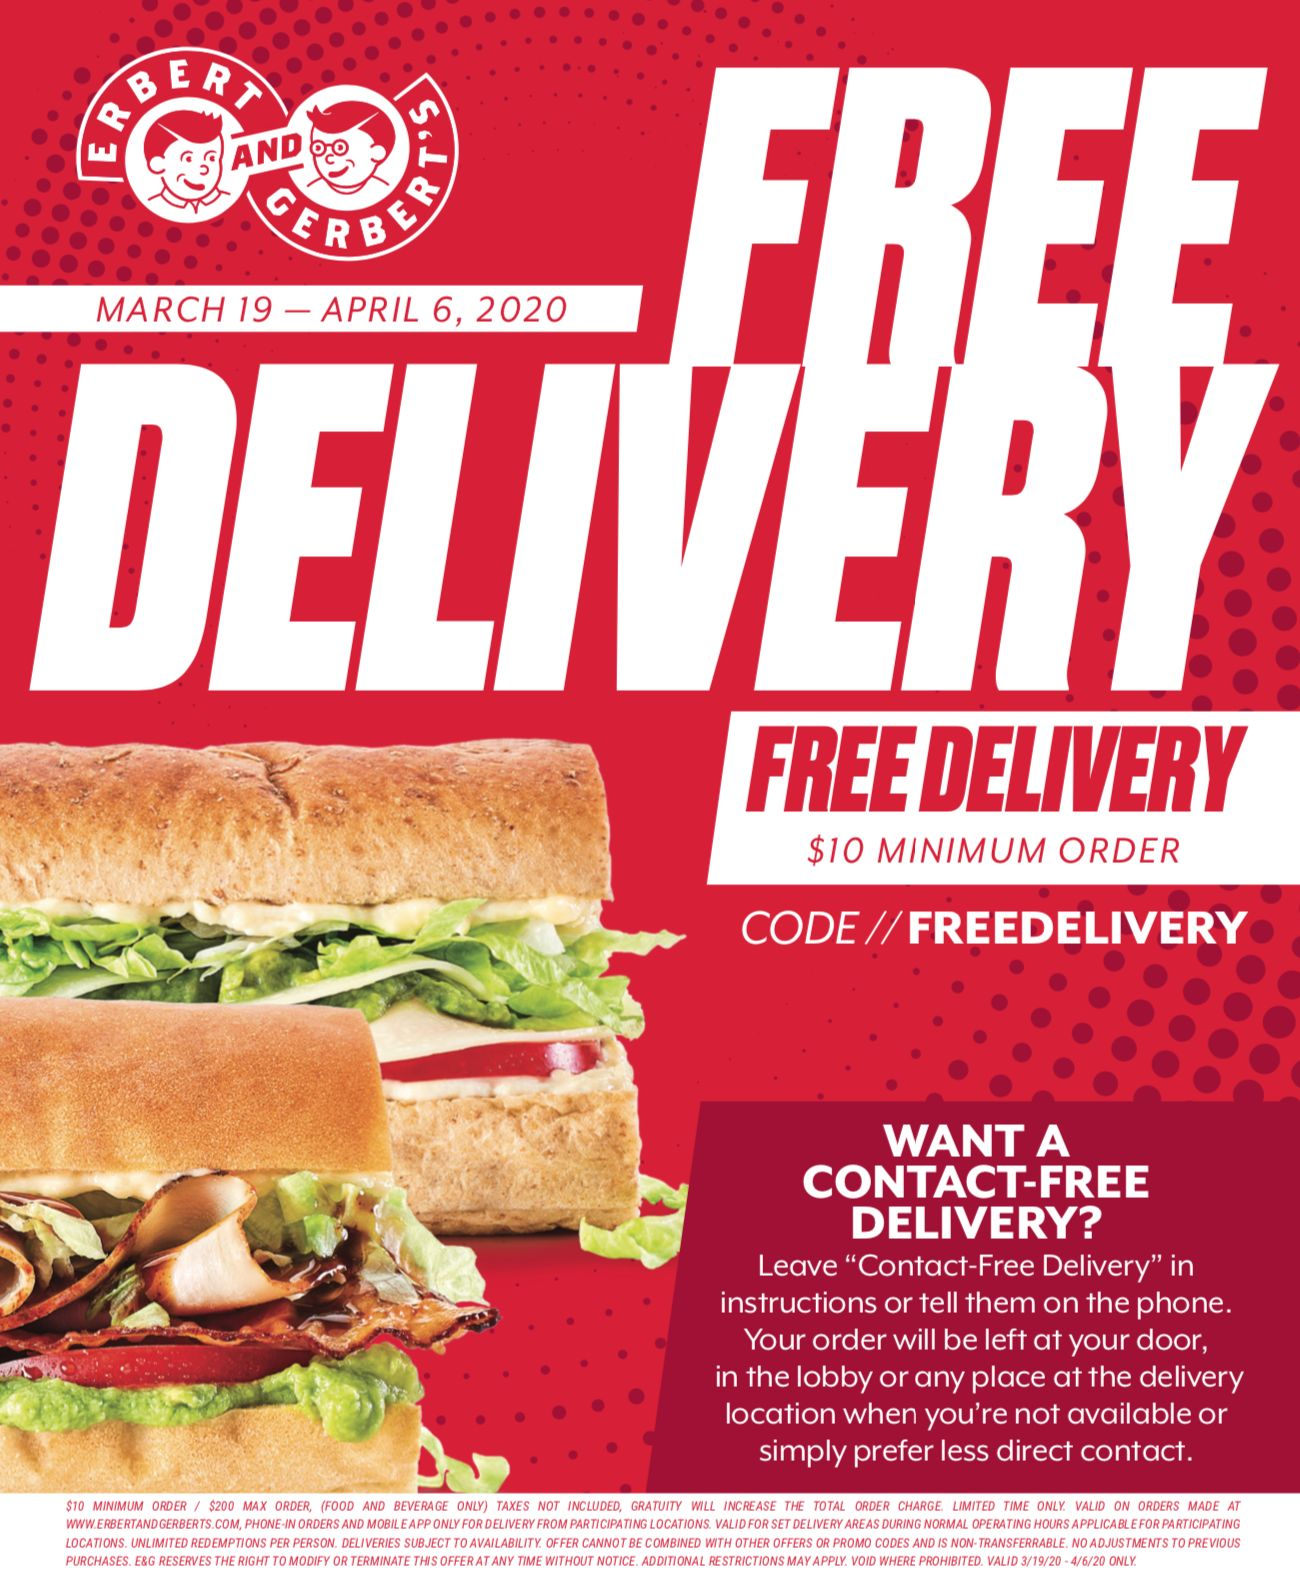 Erbert & Gerbert's Launches Free Delivery Starting March 19